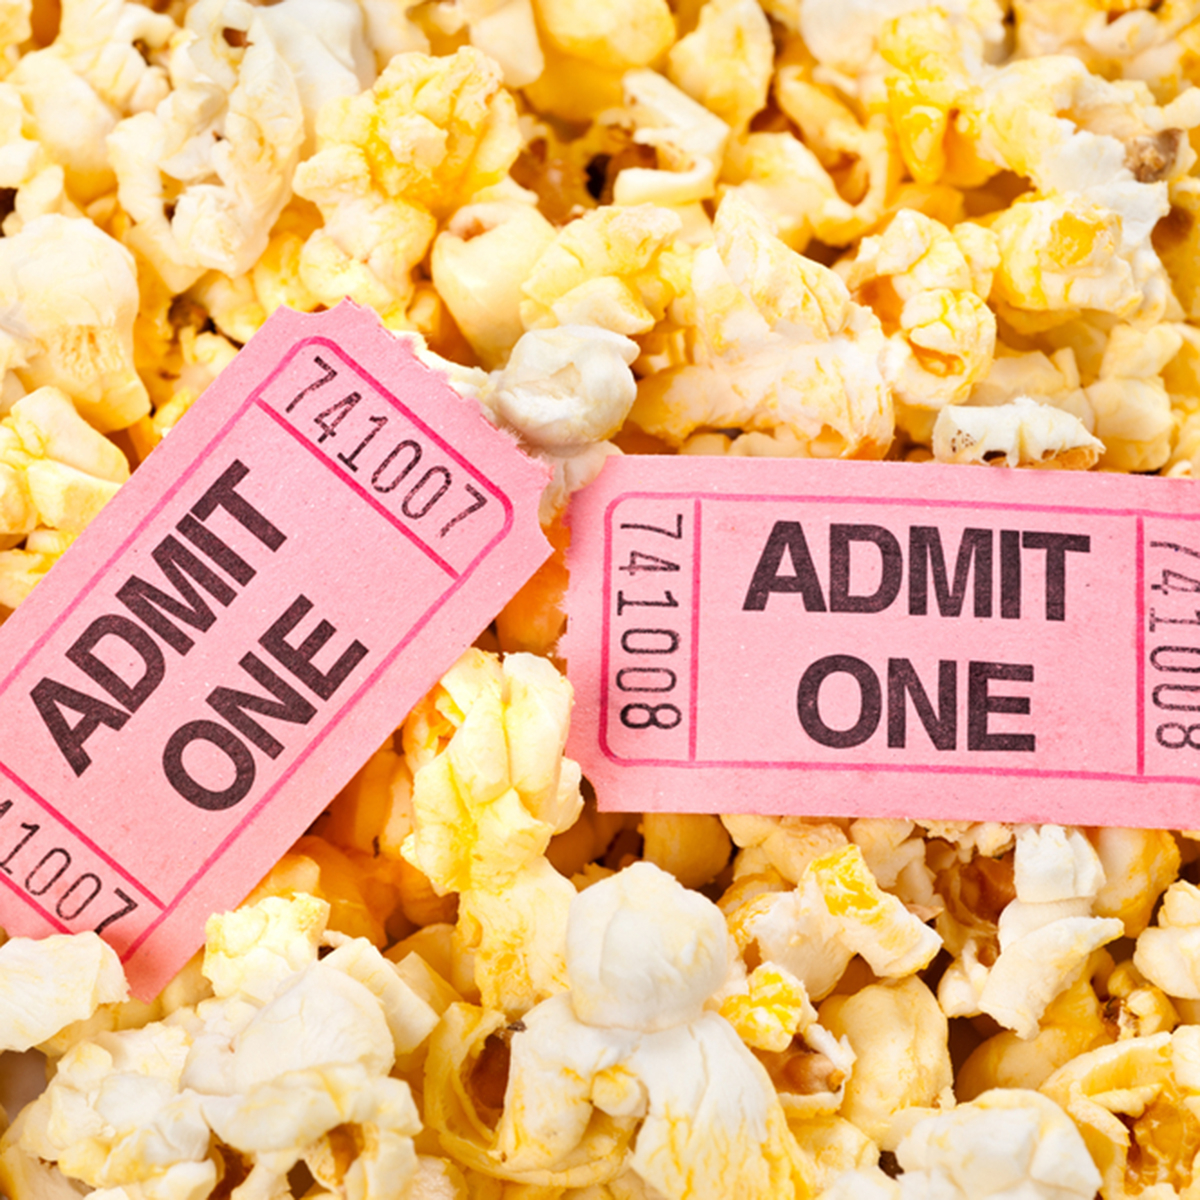 10 Fun Ideas For Outdoor Movie Night Taste Of Home in 12 Genius Concepts of How to Craft Backyard Movie Night Ideas